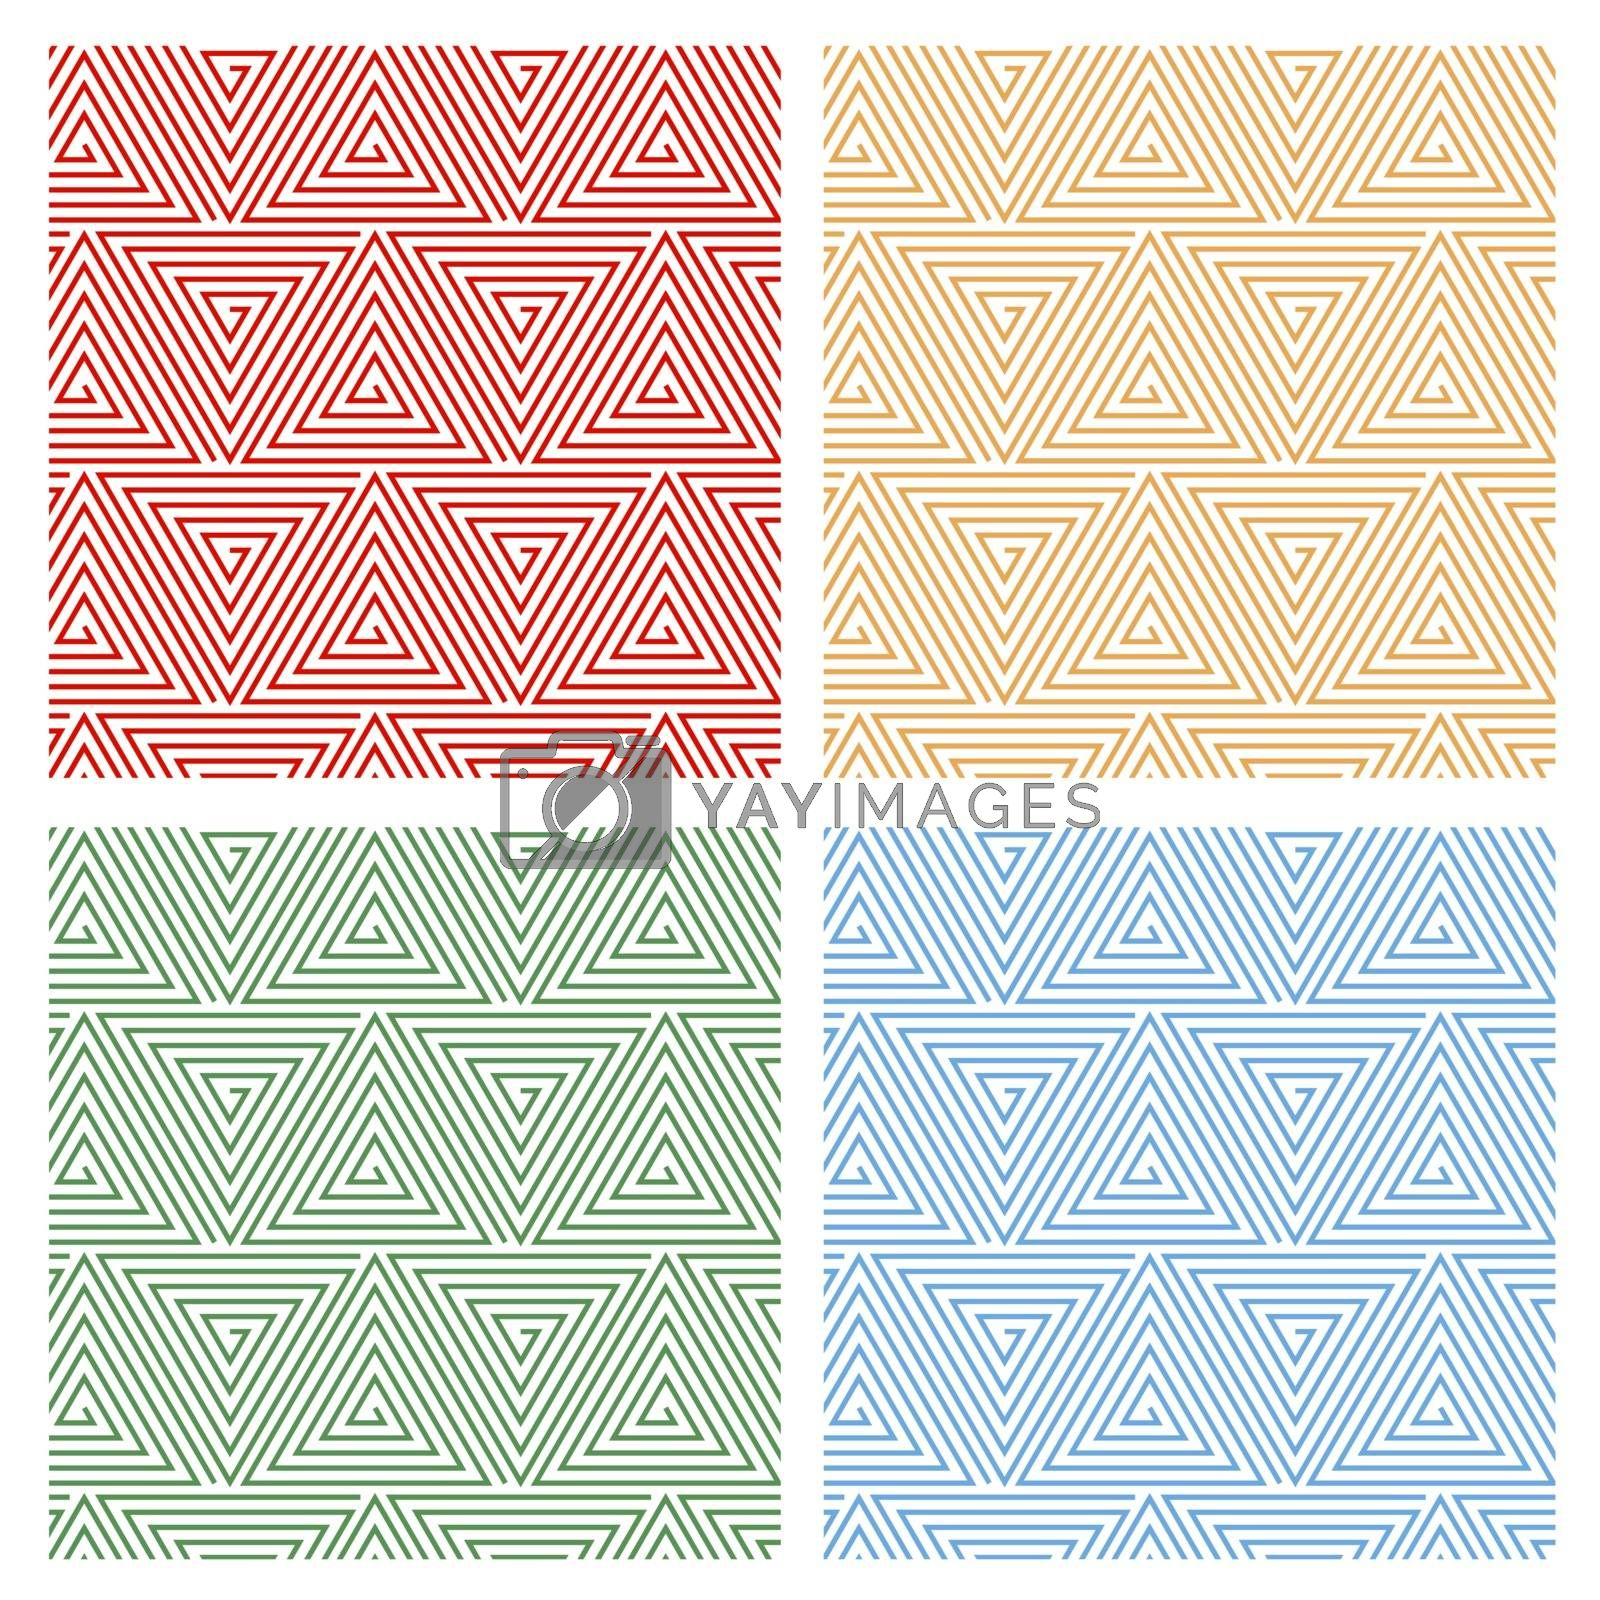 Multicolored Hypnotic Background Seamless Pattern. by yganko